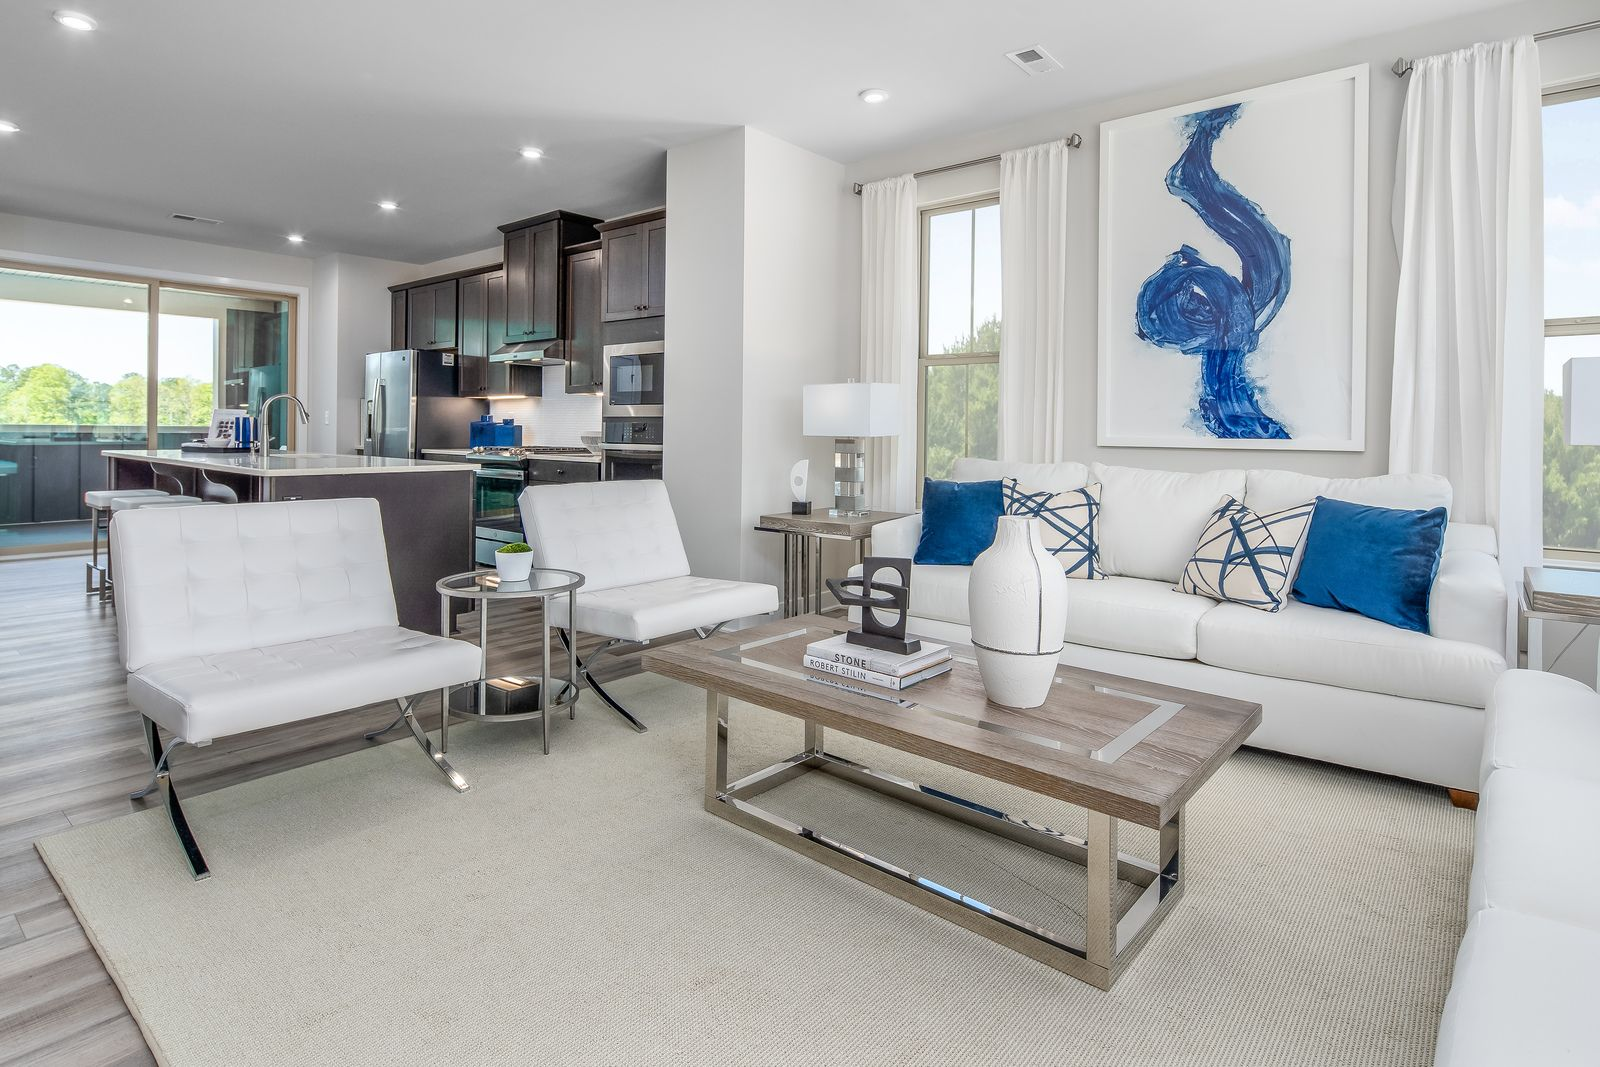 WELCOME HOME TO THE LANDING:The only new stylish and modern townhomes near Canonsburg Lake. Less than 1 minute to Donaldson's Crossroads and restaurants.Click here to schedule an appointment.